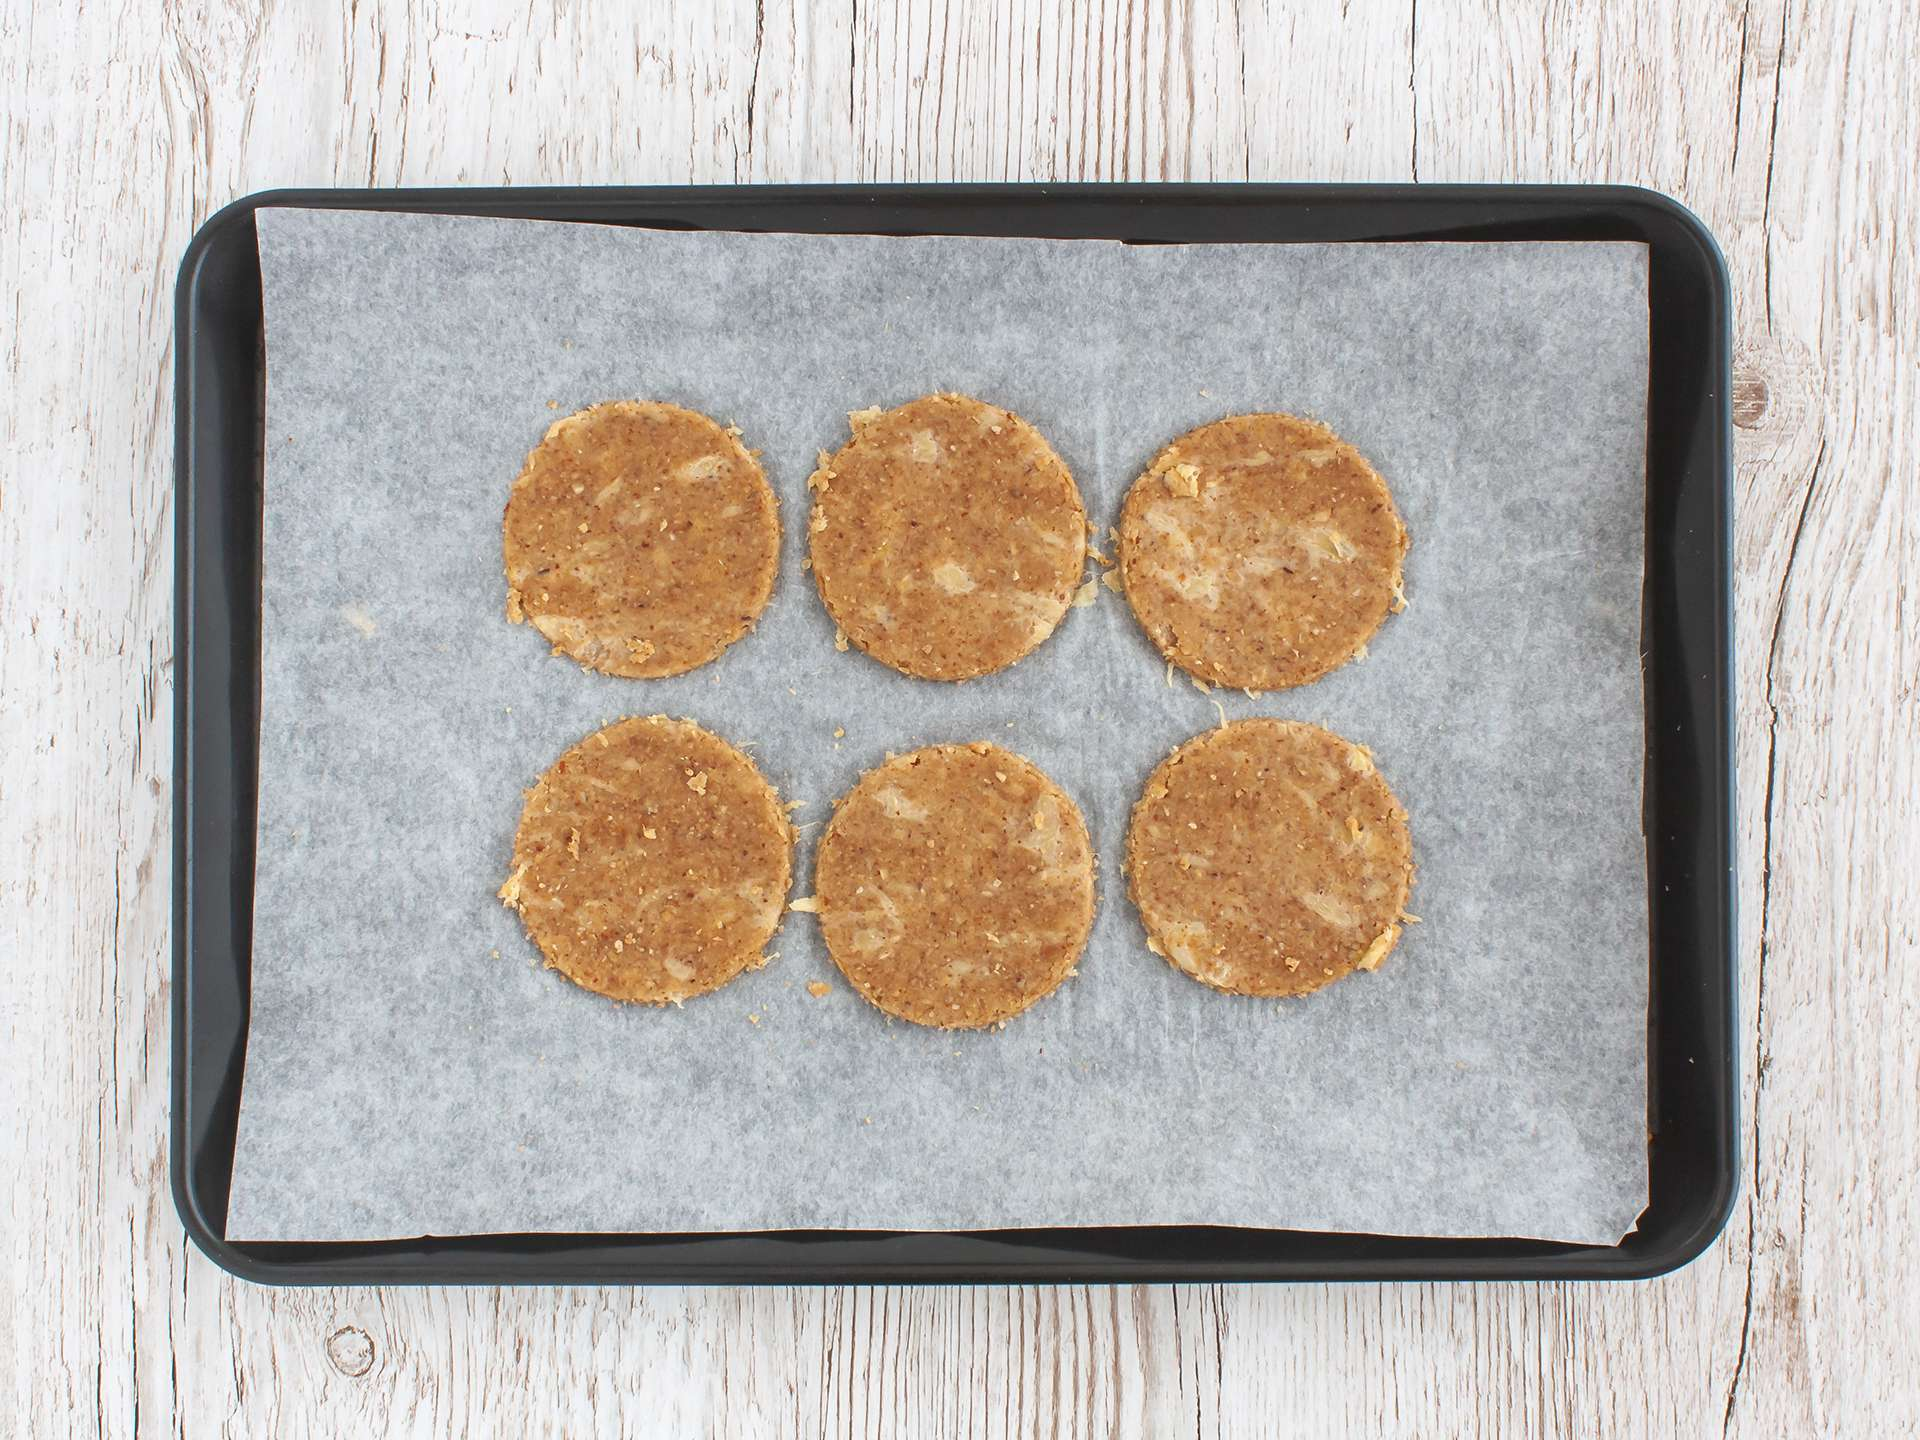 Step 4.1 of Gluten Free Oatmeal Digestive Biscuits